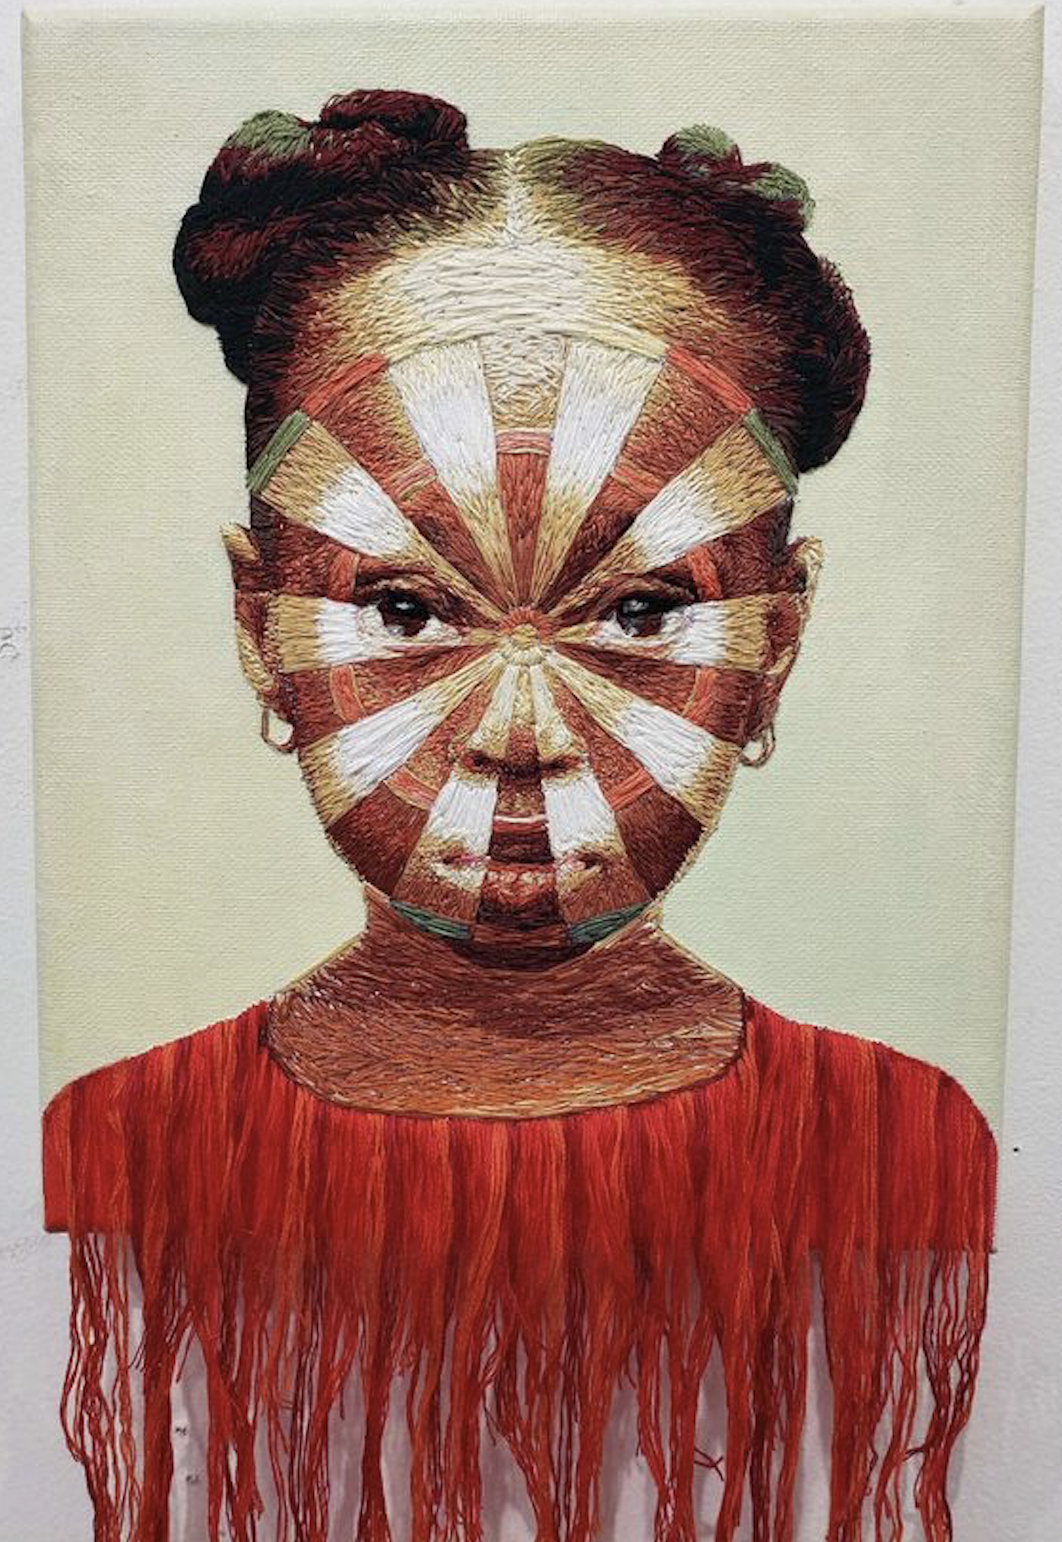 A painting of a little girl in a red shirt with a dart board superimposed over her face.